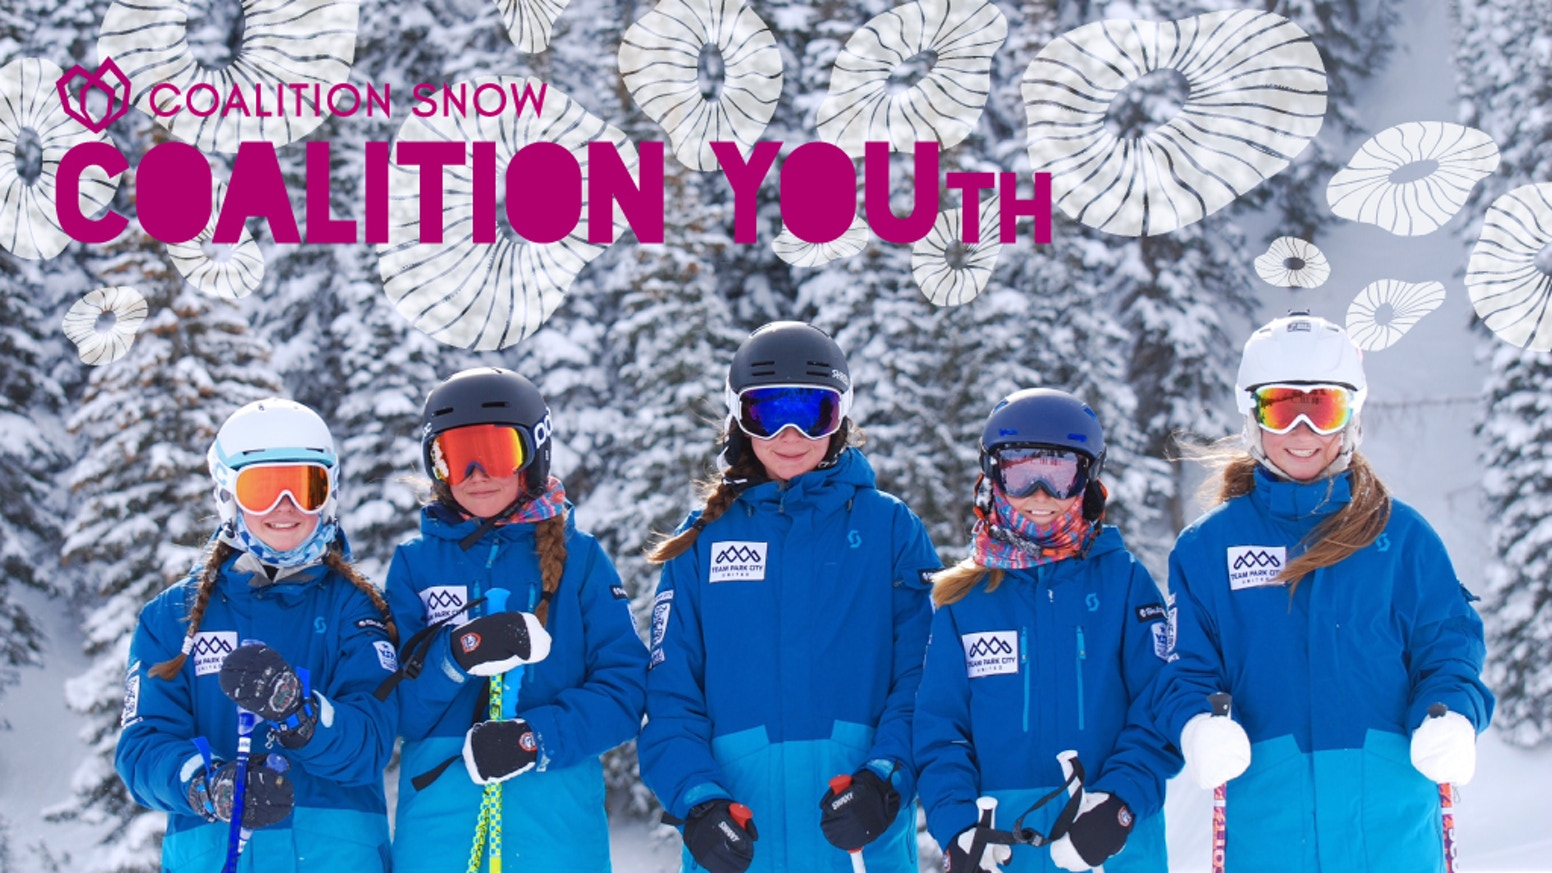 We're designing the very best skis and snowboards for the next generation of women leading the charge. Why? Because #TheFutureIsFemale.